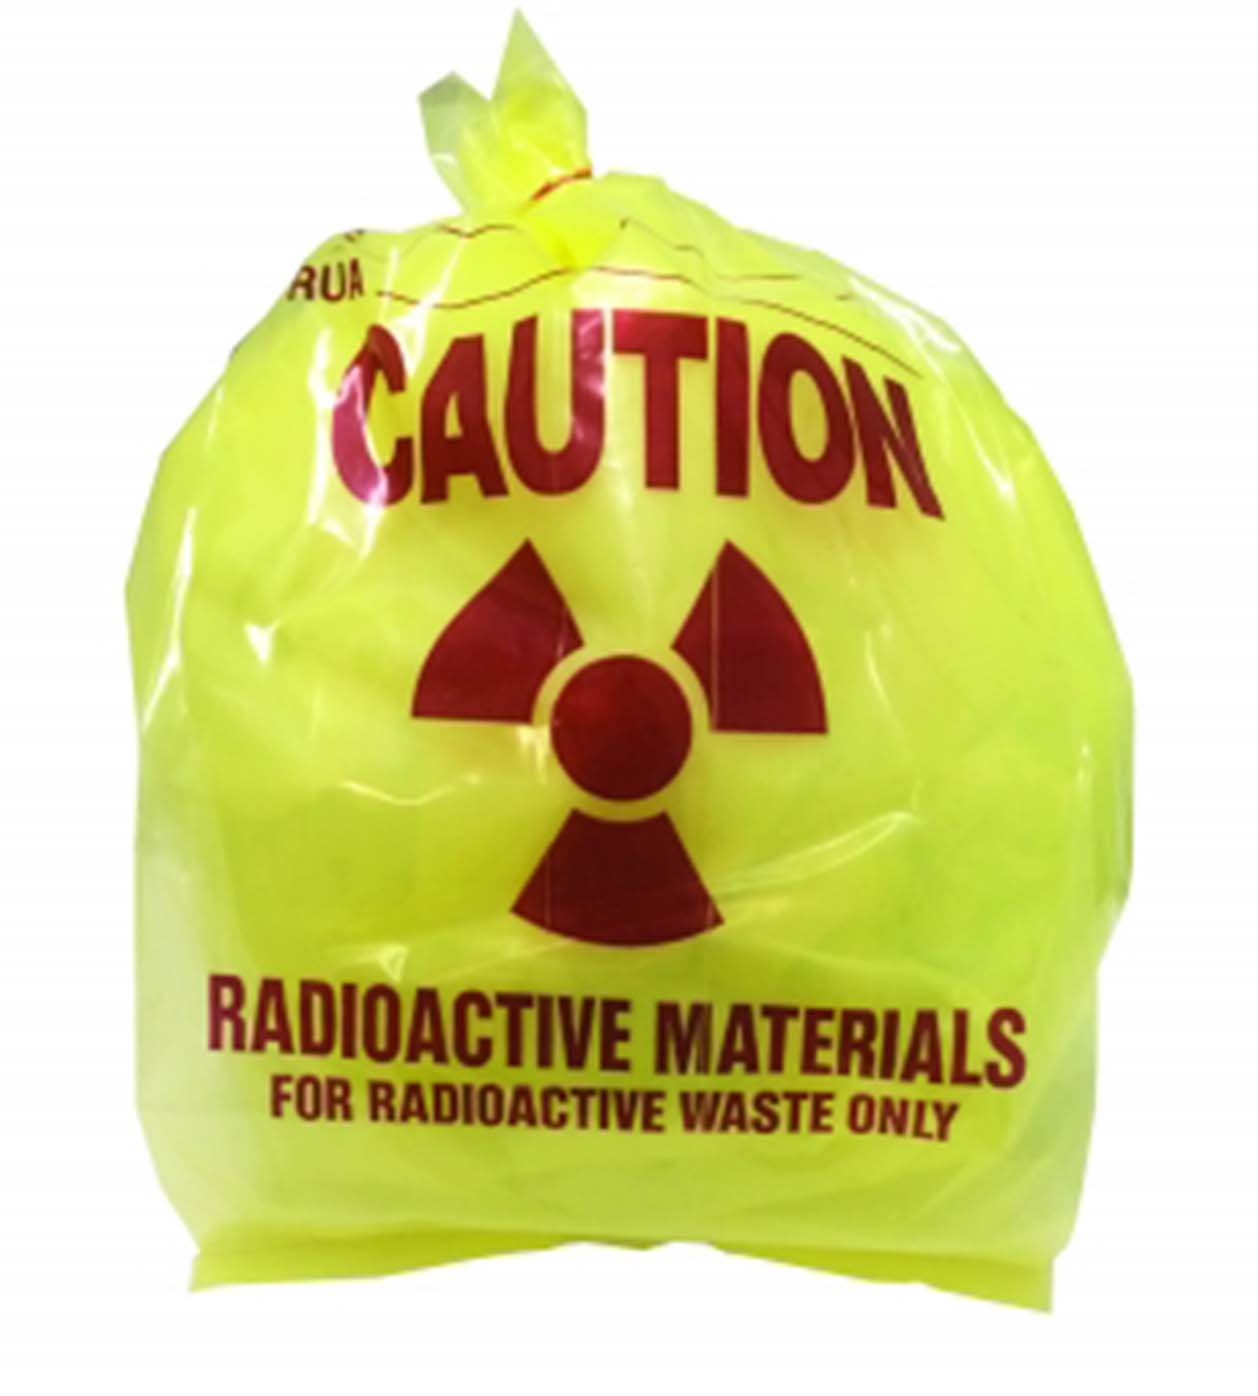 Radioactive Waste Disposal Bags, 3 Mil Thick, 24 x 36 Inches, Yellow Tint, Pre-Printed with Caution Message, 250 per Roll by RPI